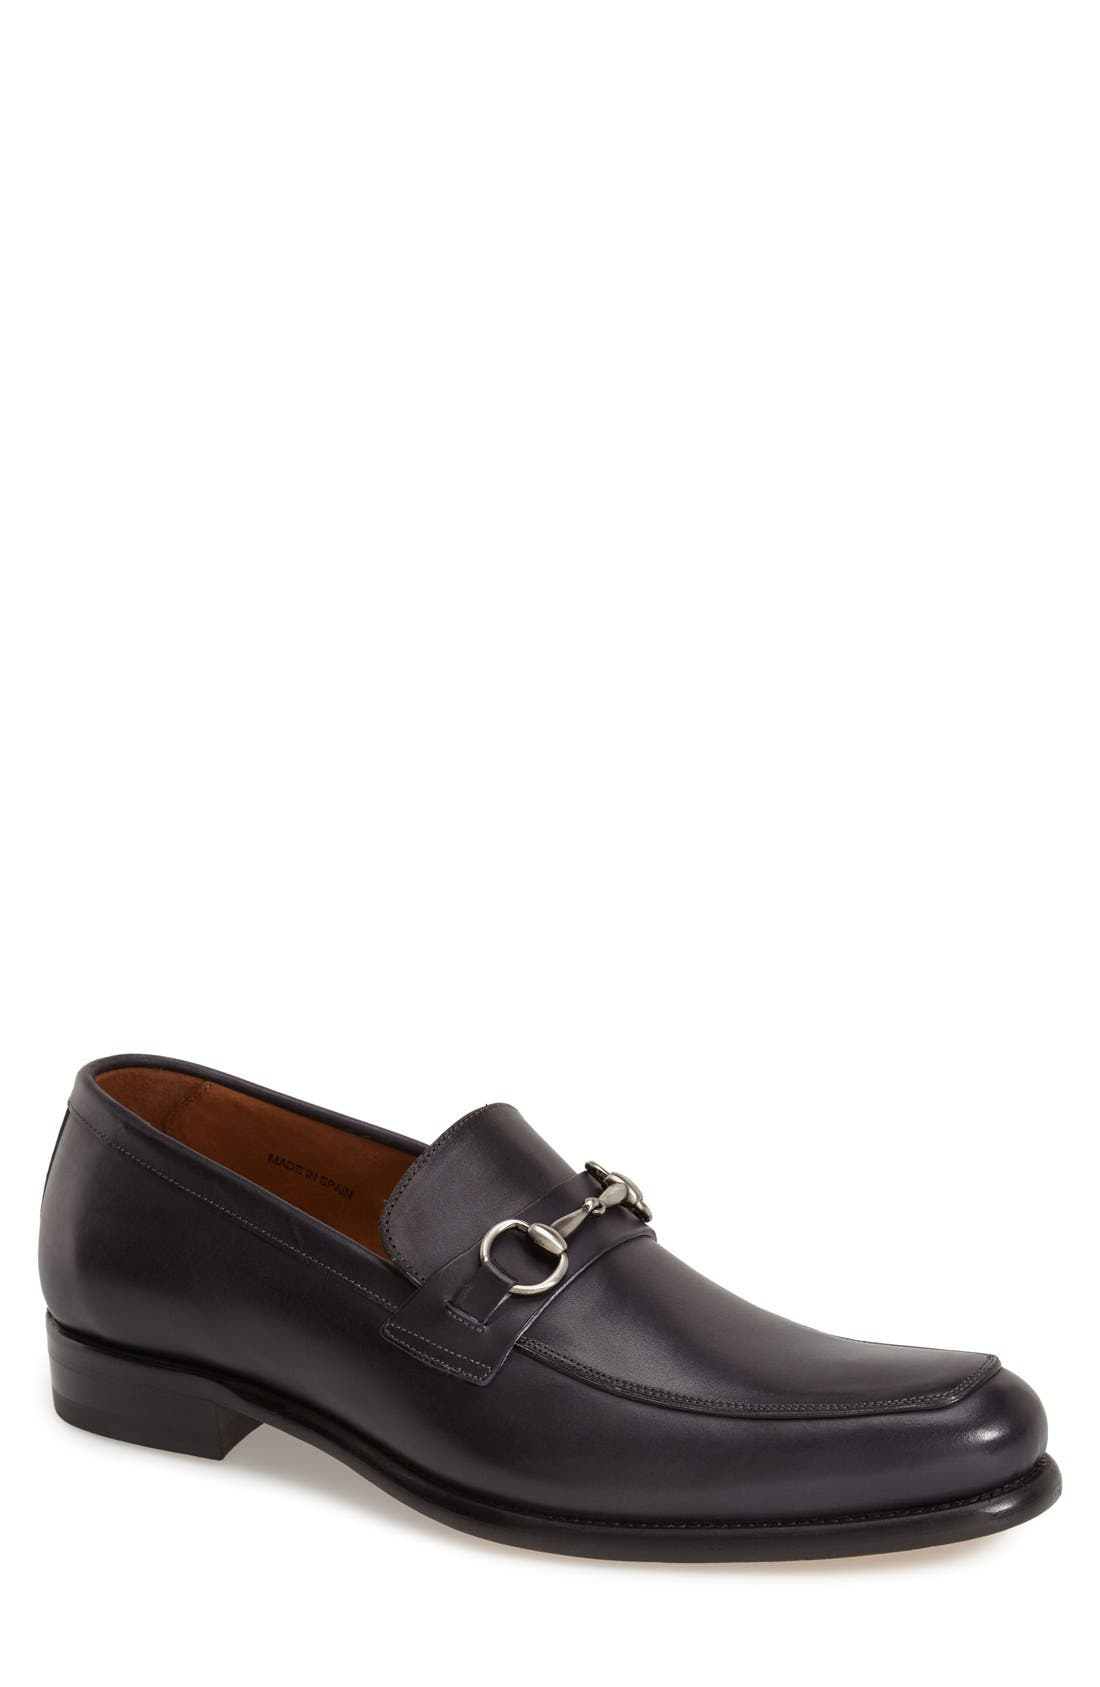 'Worcester' Bit Loafer,                         Main,                         color, Black